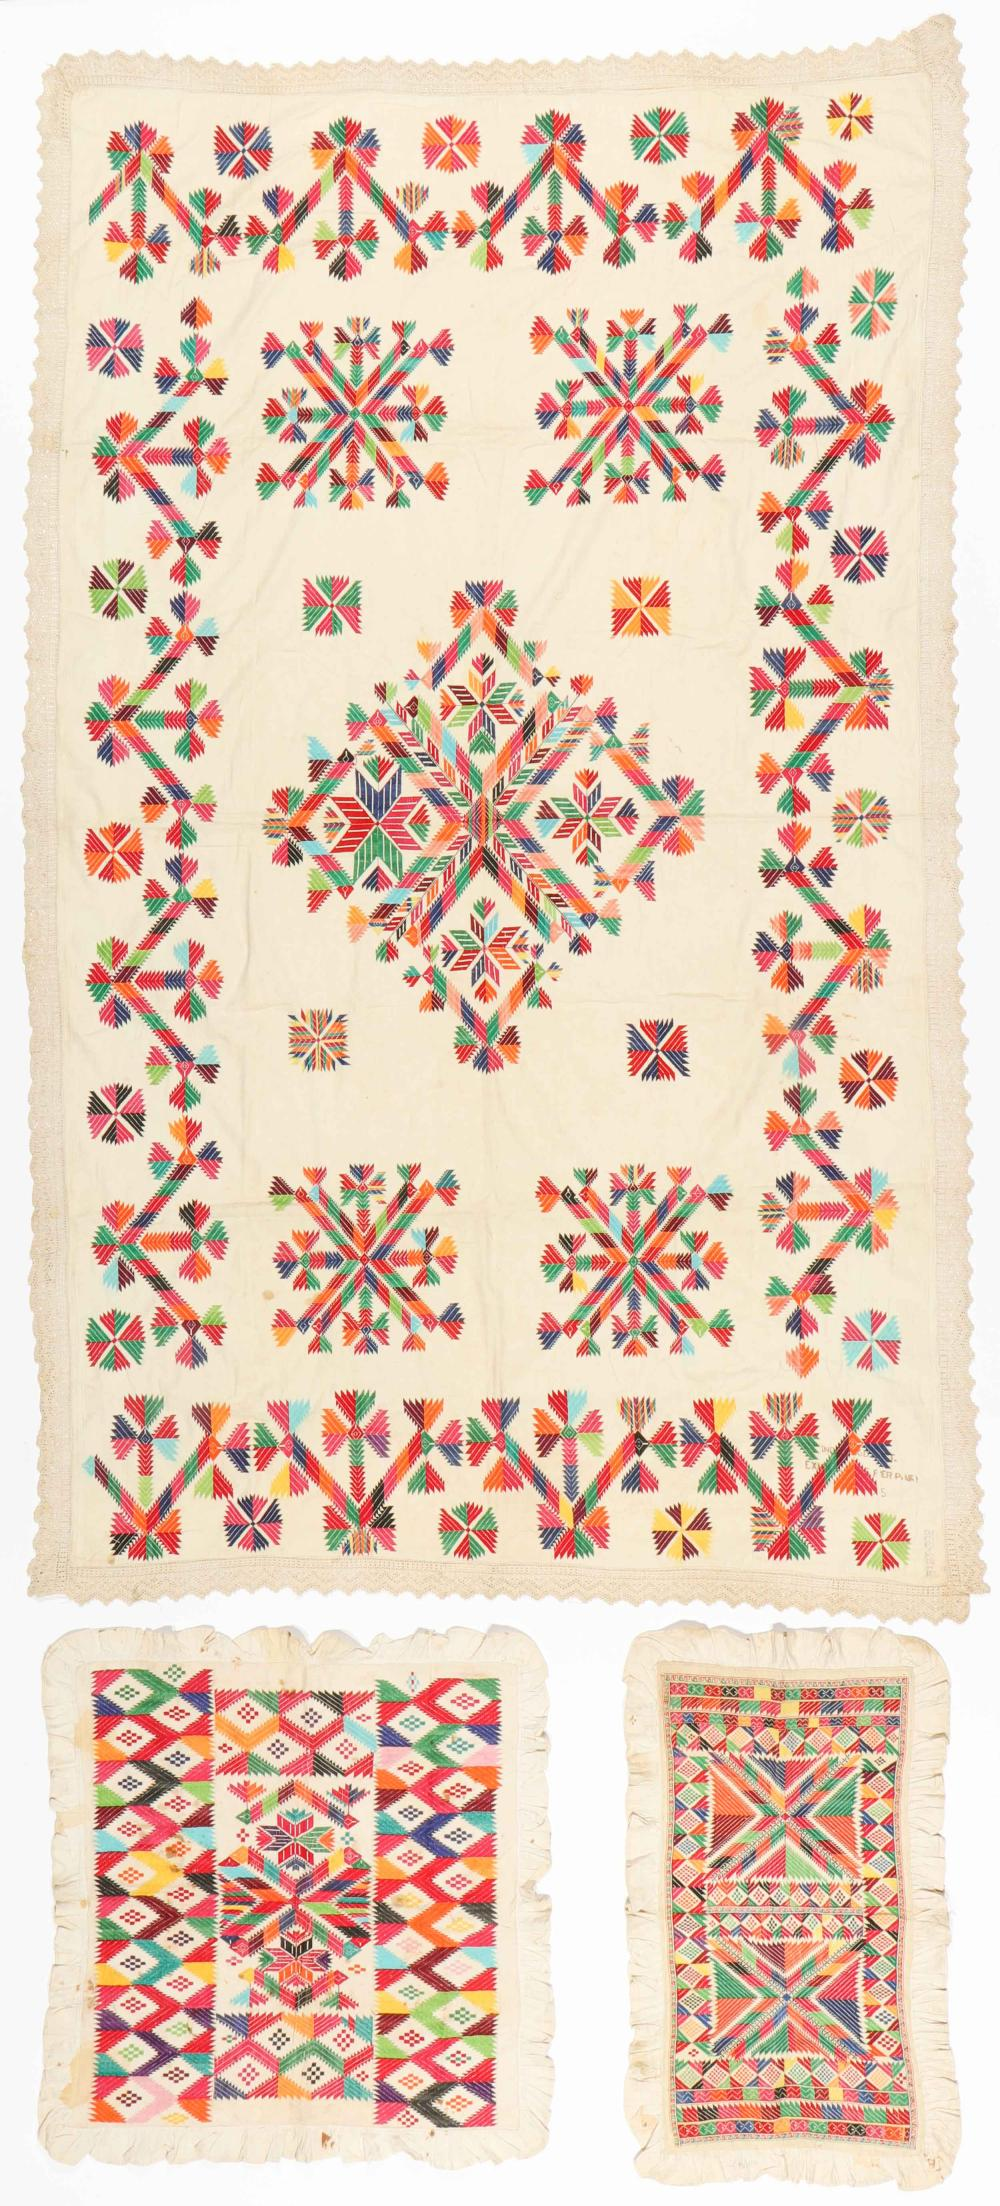 3 Old Embroidered Textiles, India